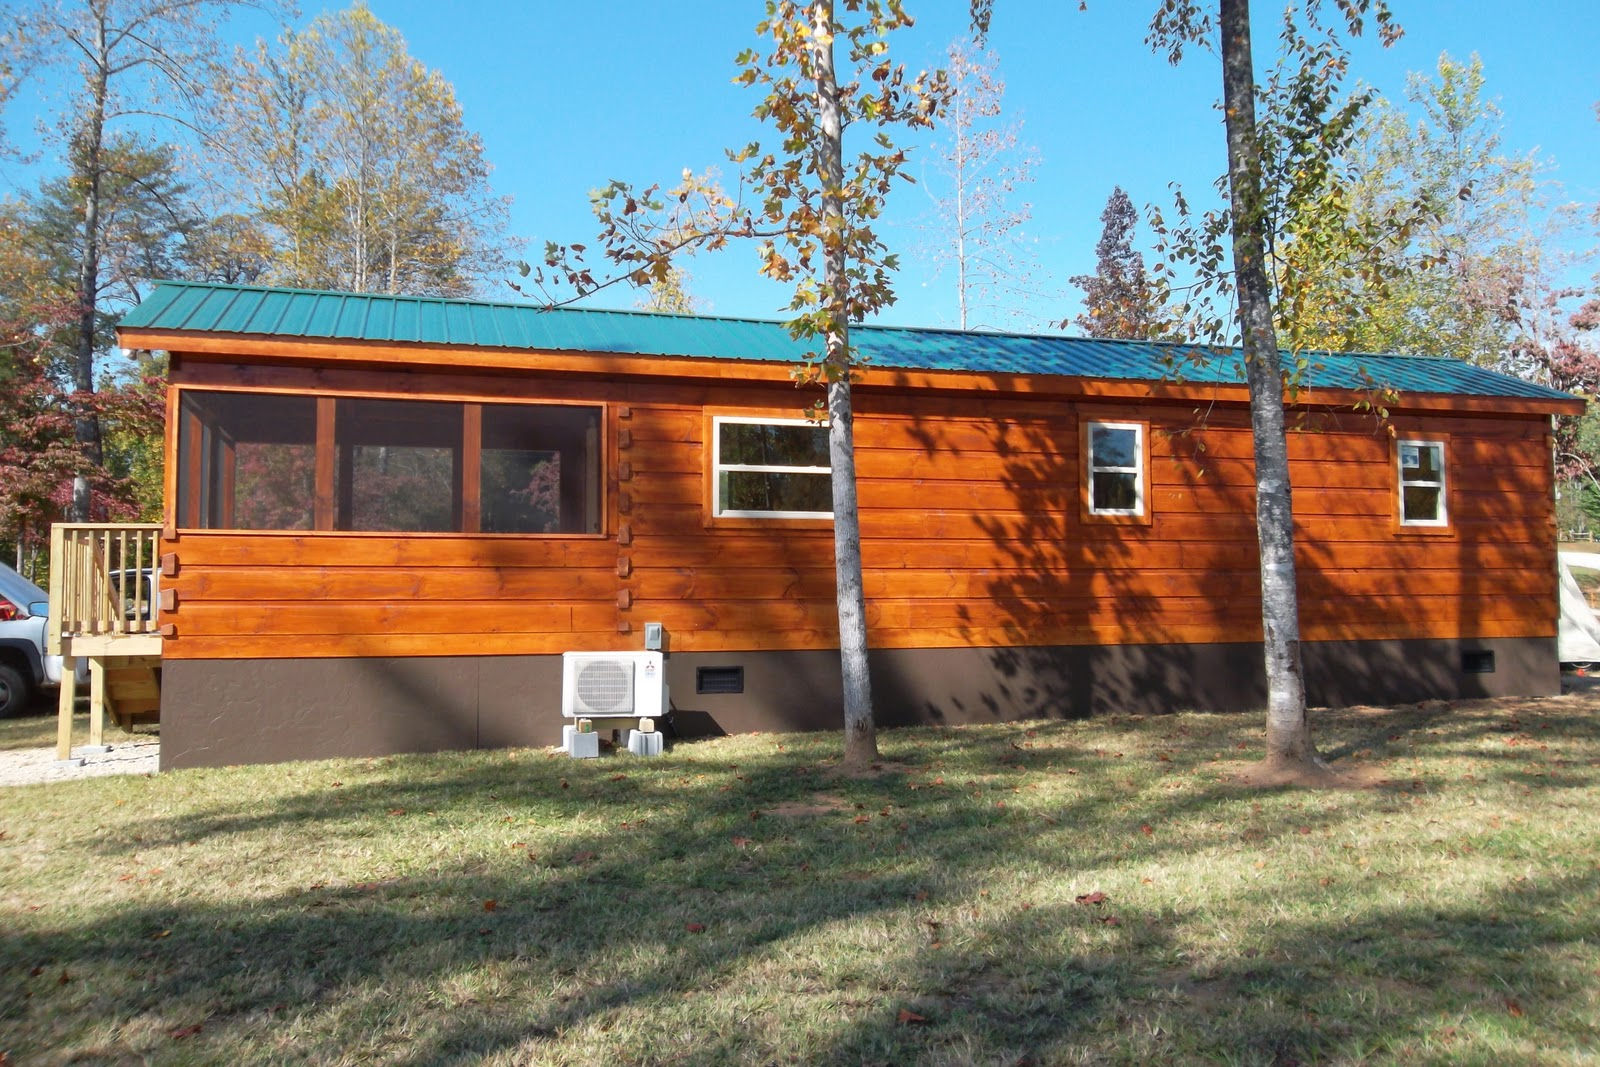 Log cabin stain colors - This Month Week We Highlight The Cinnamon Color As Applied To A Customer S Cabins For More Information About Color Options Call Our Office 864 457 2444